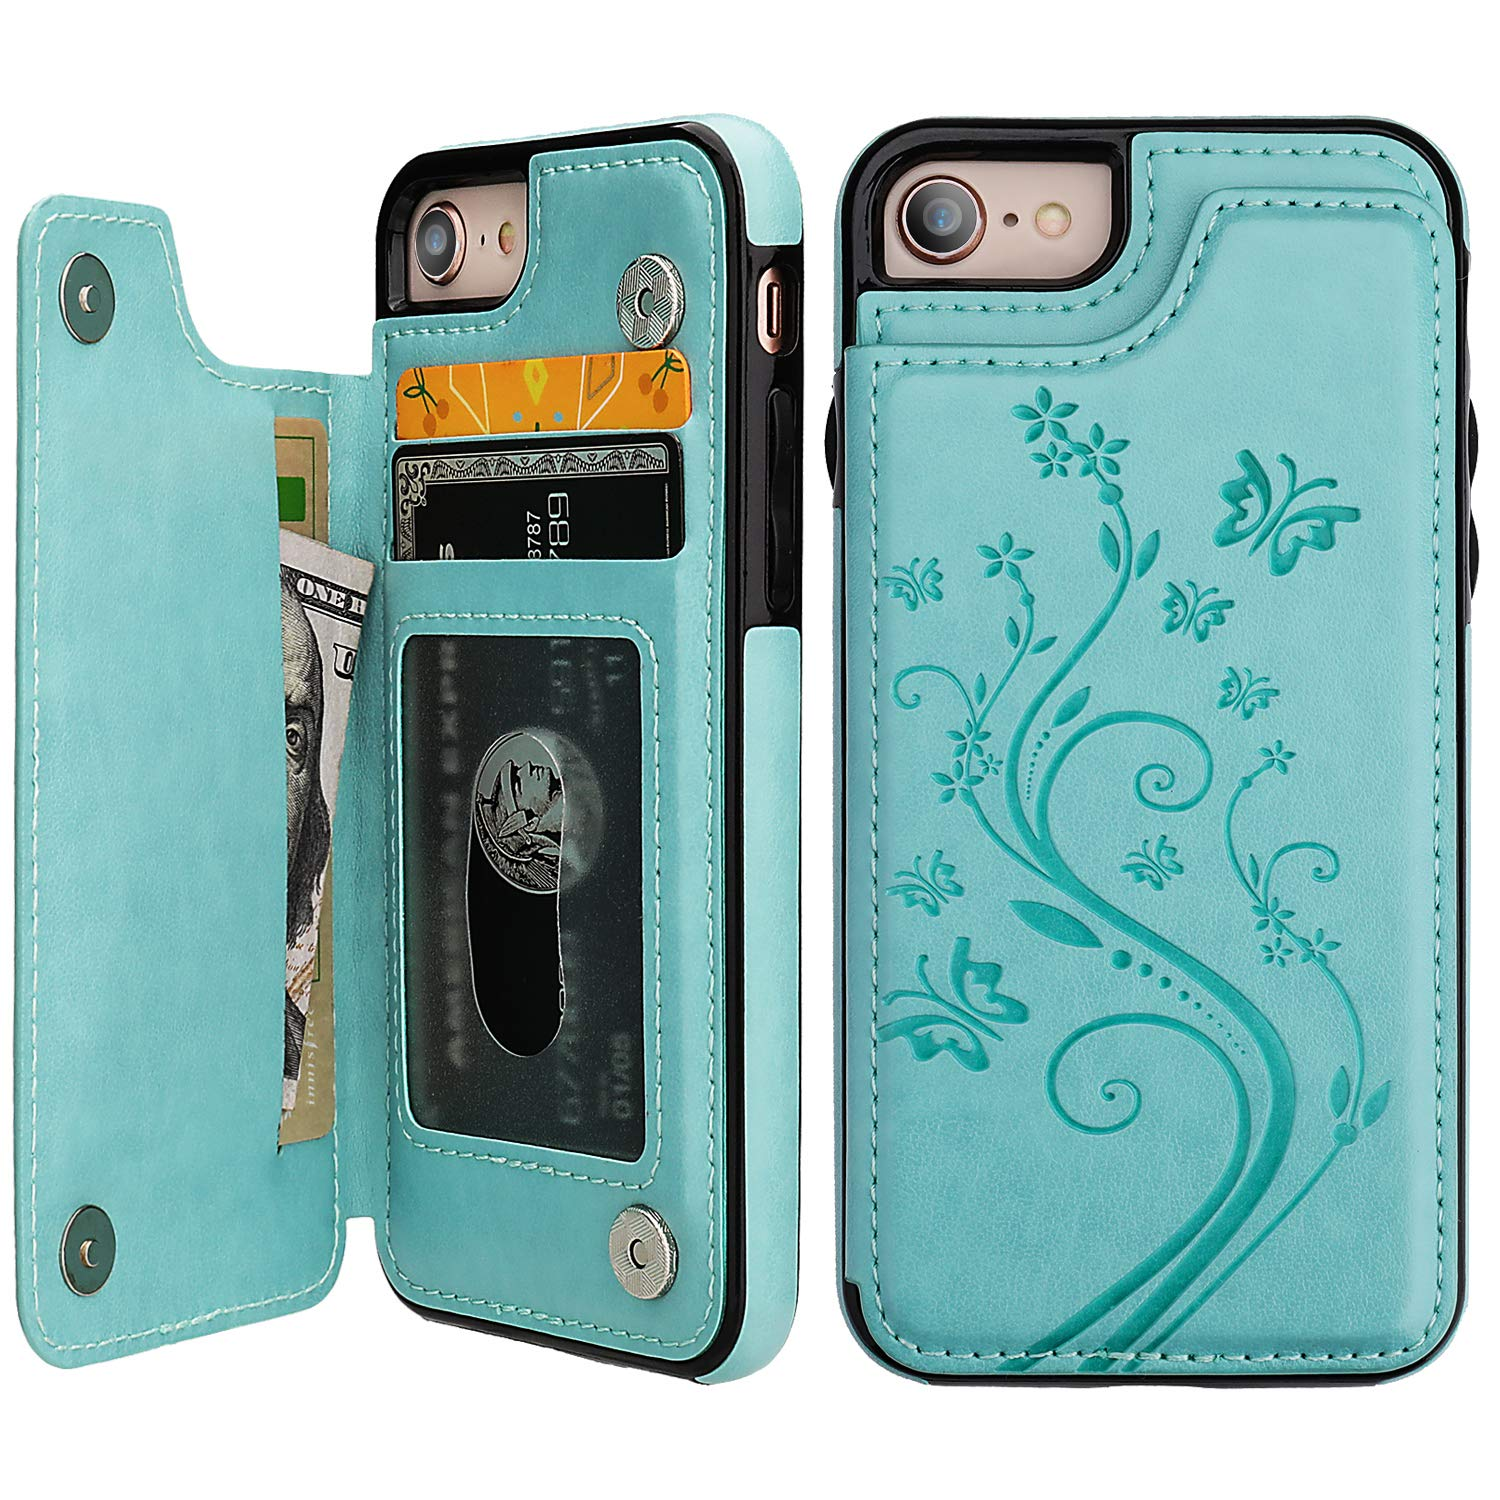 iPhone 7 iPhone 8 Case Wallet with Card Holder, Vaburs Embossed Butterfly Premium PU Leather Double Magnetic Buttons Flip Shockproof Protective Cover for iPhone 7 iPhone 8 Case(Mint Green) by Vaburs